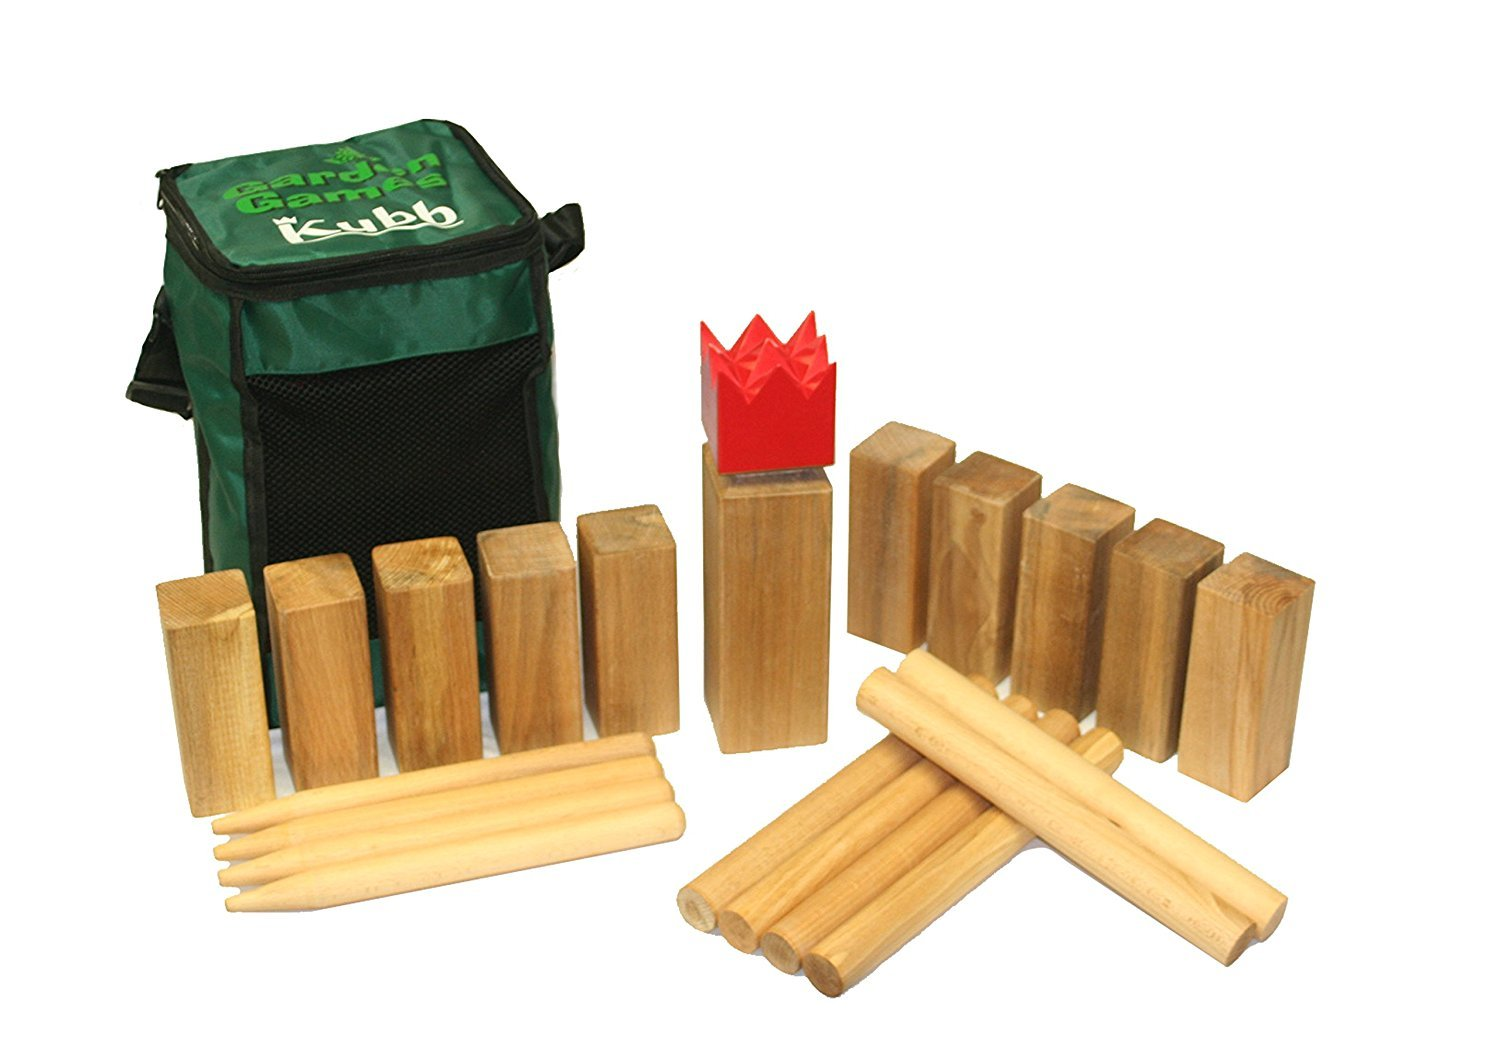 garden games 531 kubb premium qualit t bucheholz spiel in einer tasche g nstig. Black Bedroom Furniture Sets. Home Design Ideas